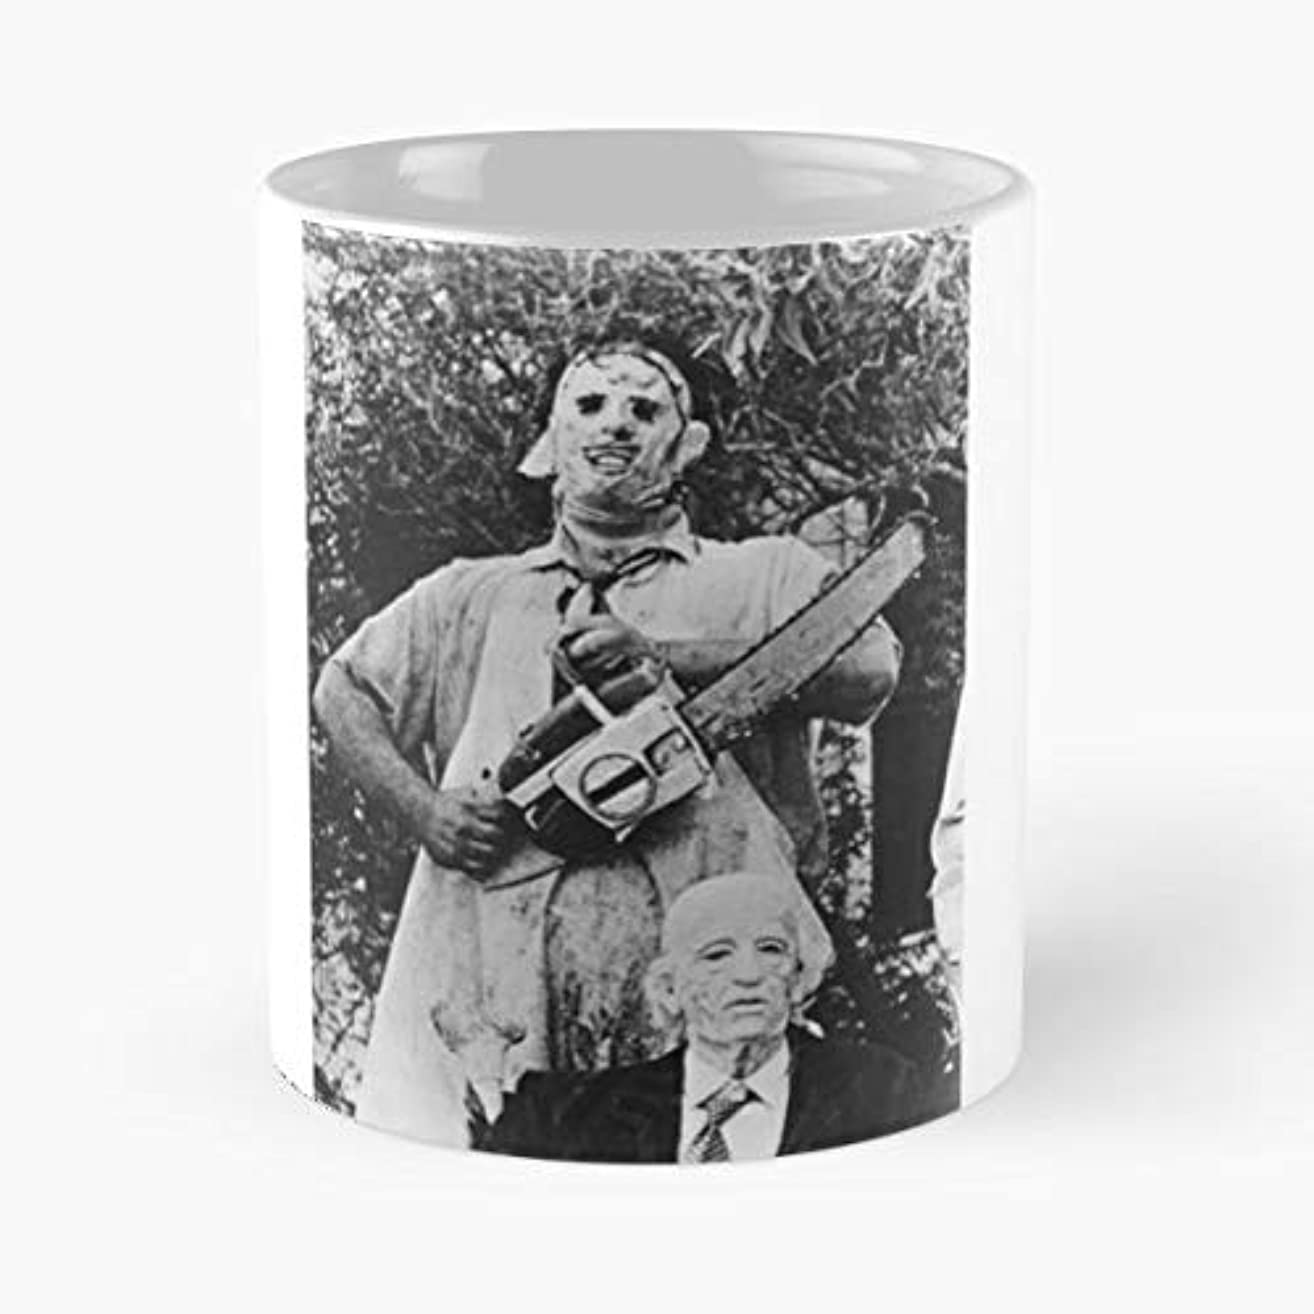 Texas Chainsaw Massacre 2-11 Oz Coffee Mugs Unique Ceramic Novelty Cup, The Best Gift For Holidays.